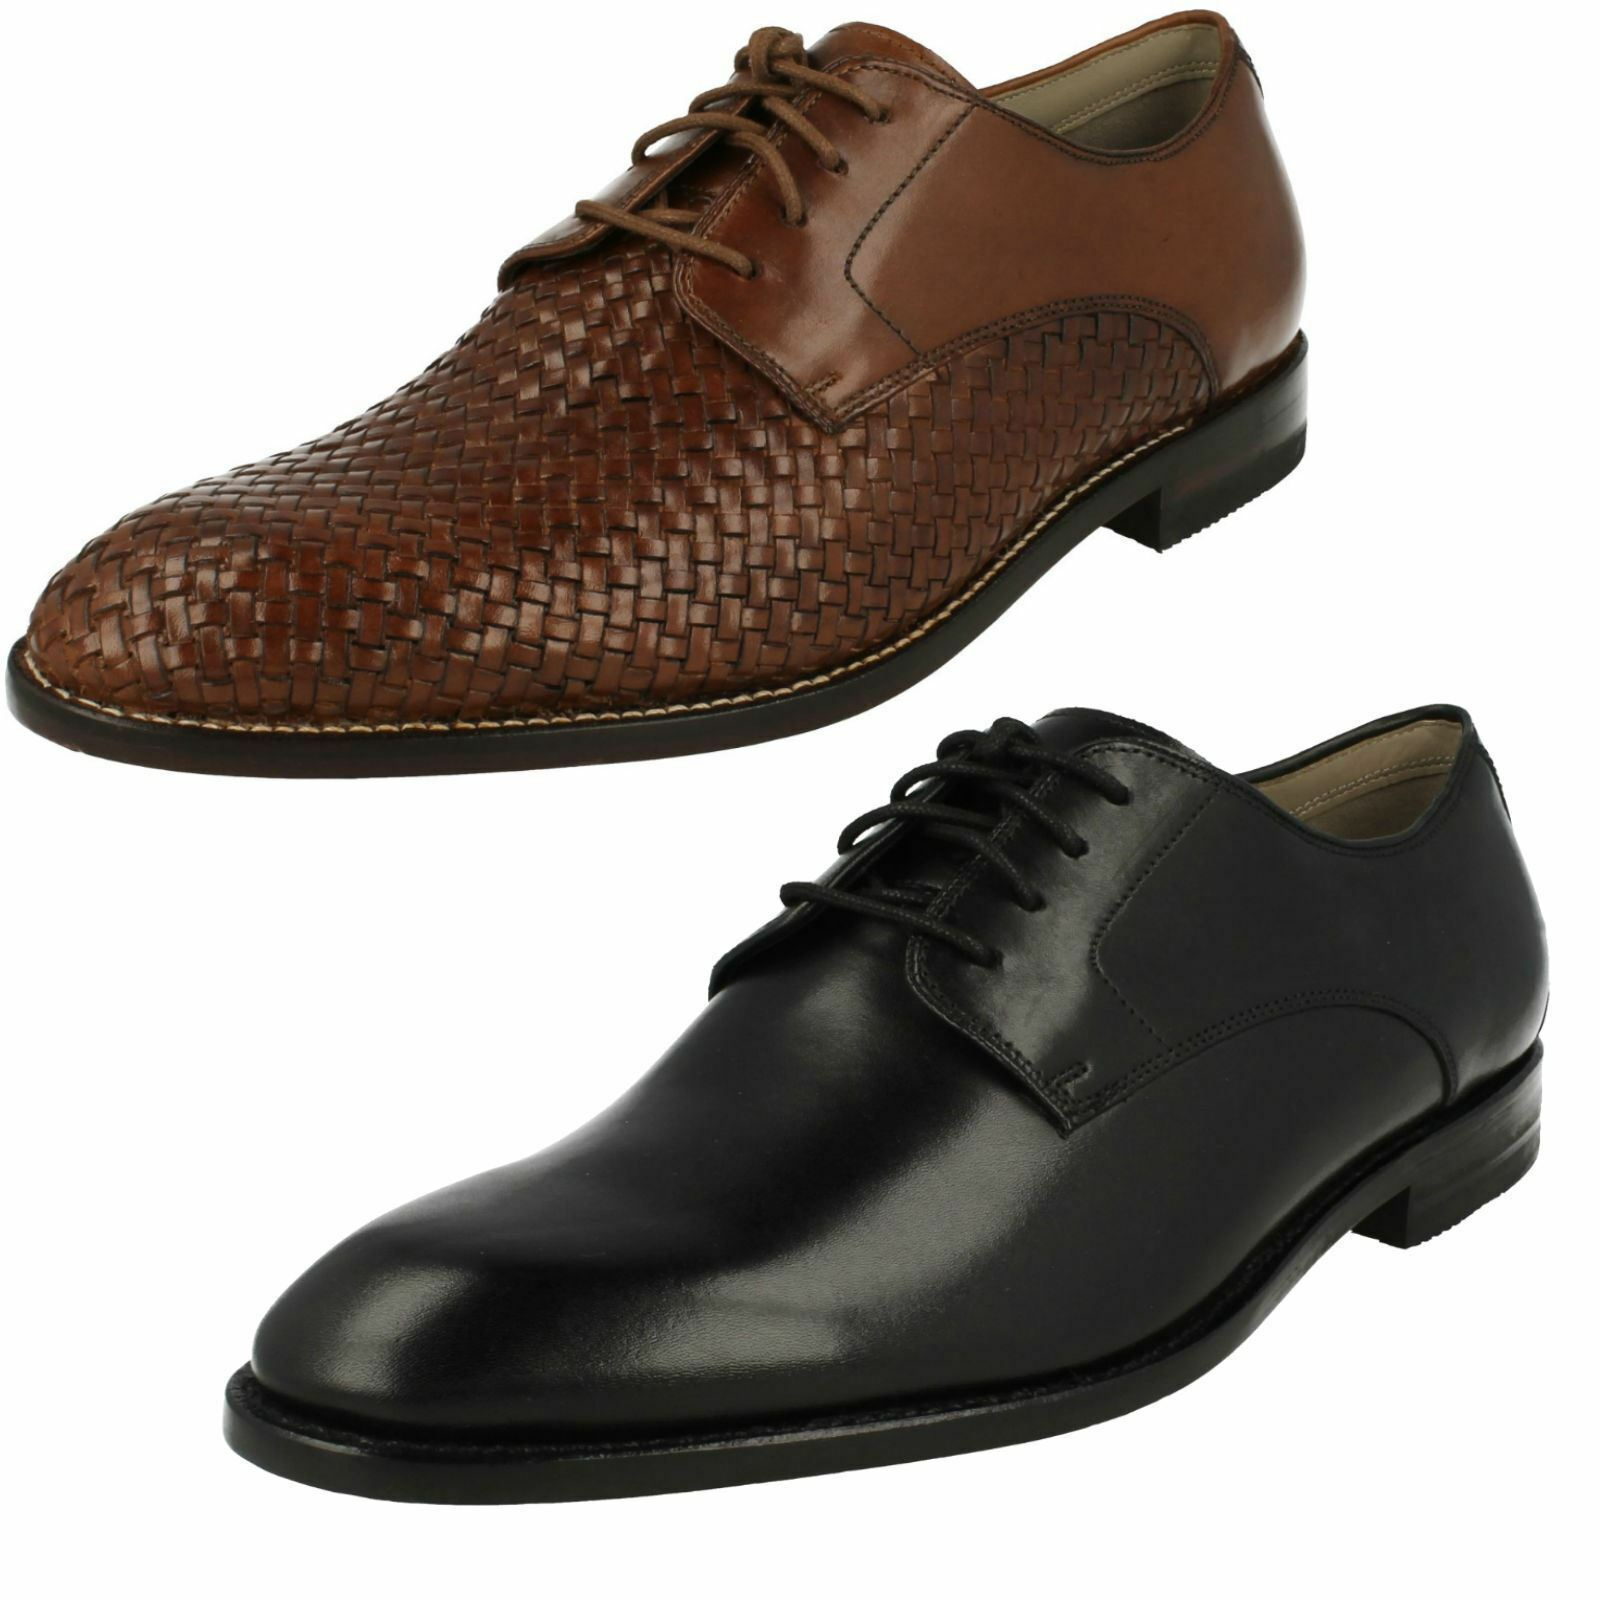 Mens Clarks Twinley Lace Smart nero or Tan Weave Leather  Lace Up scarpe  da non perdere!